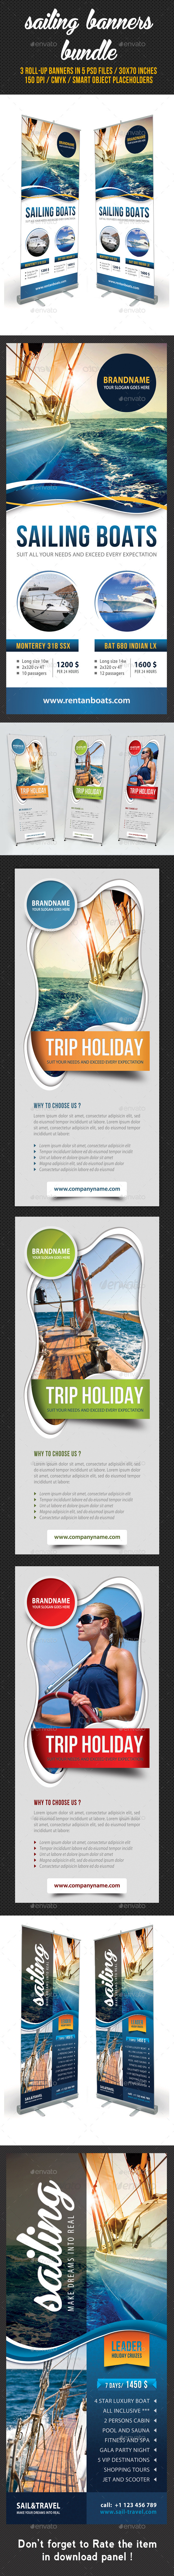 GraphicRiver 3 in 1 Sailing Yacht Banner Bundle 01 8816780